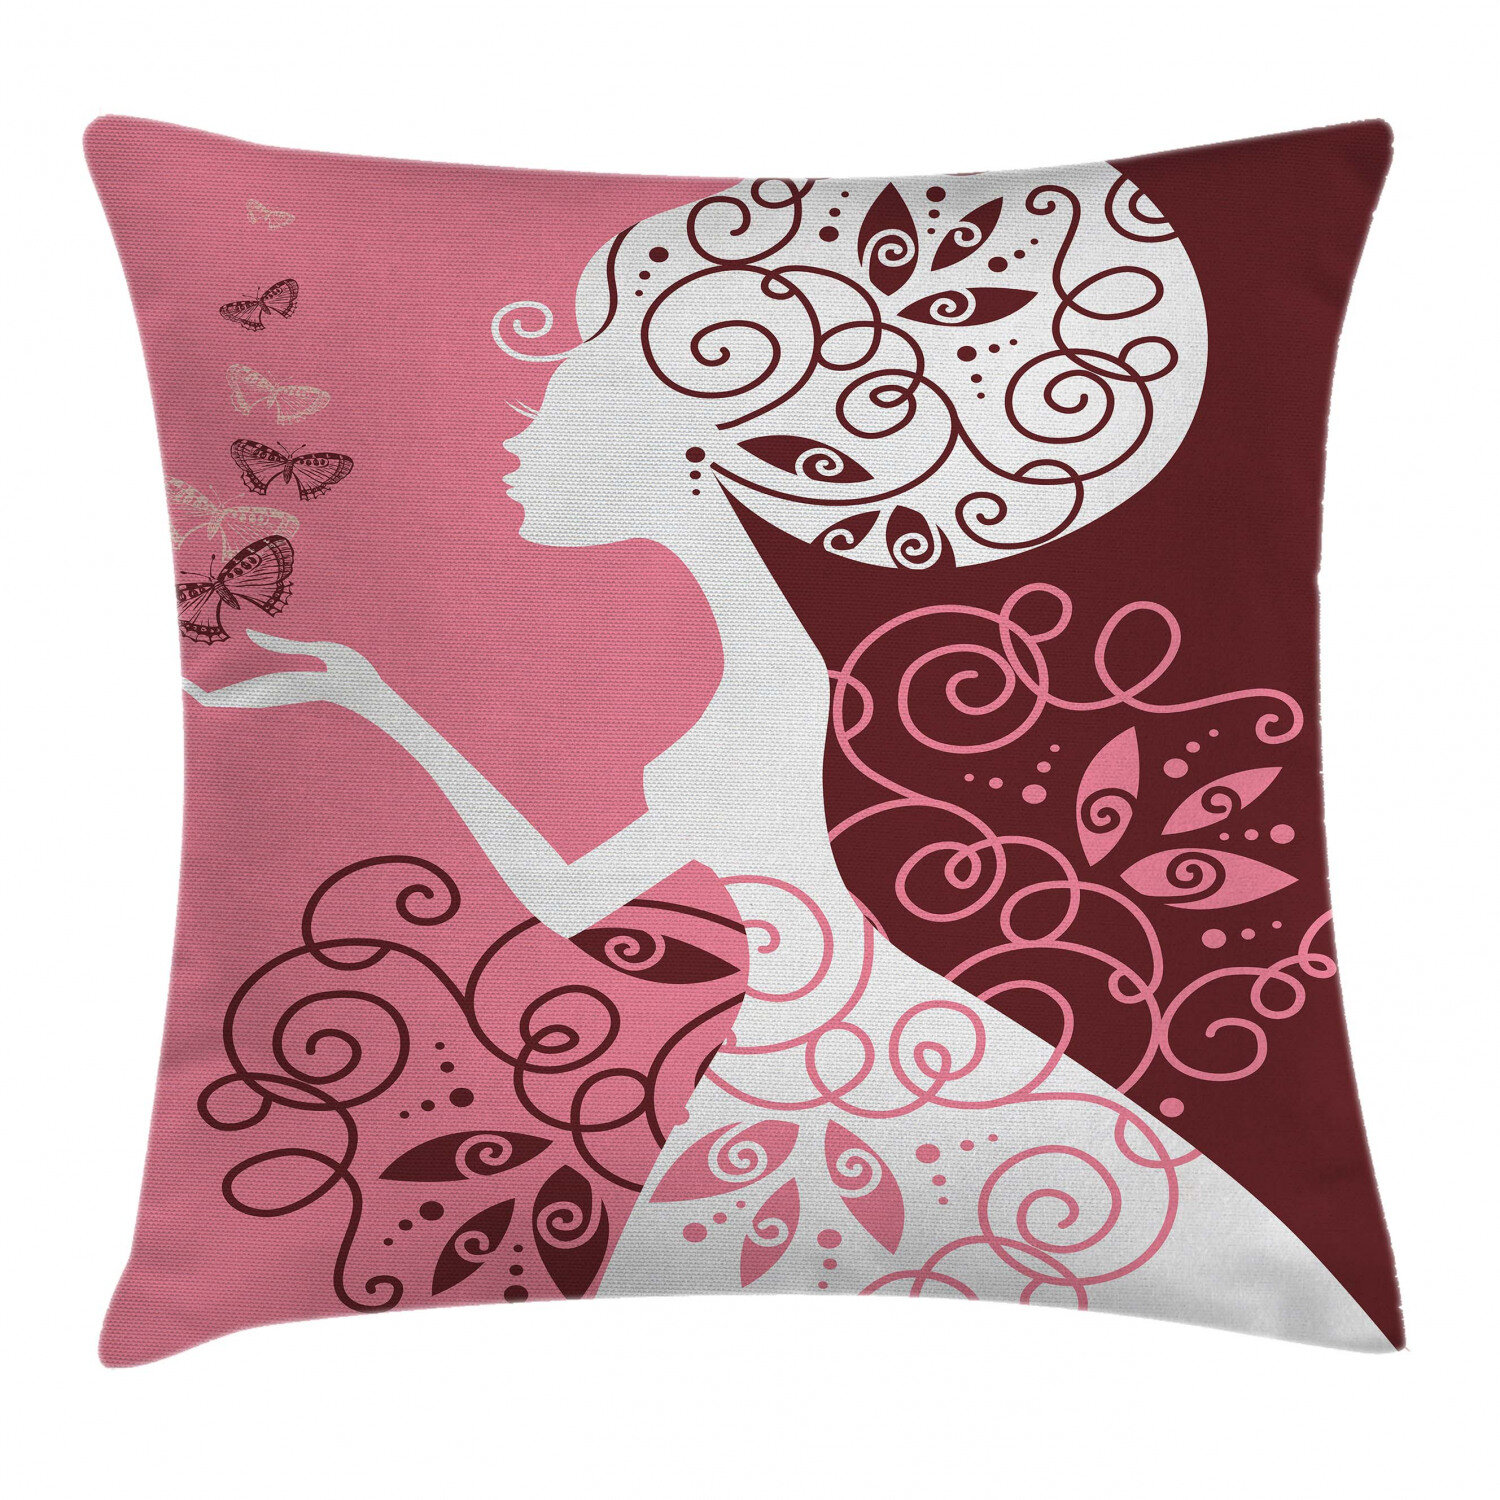 Home Decor Kids Decorative Pillow Covers For Girls Lil Sis Floral Throw Cushion Case Credify One